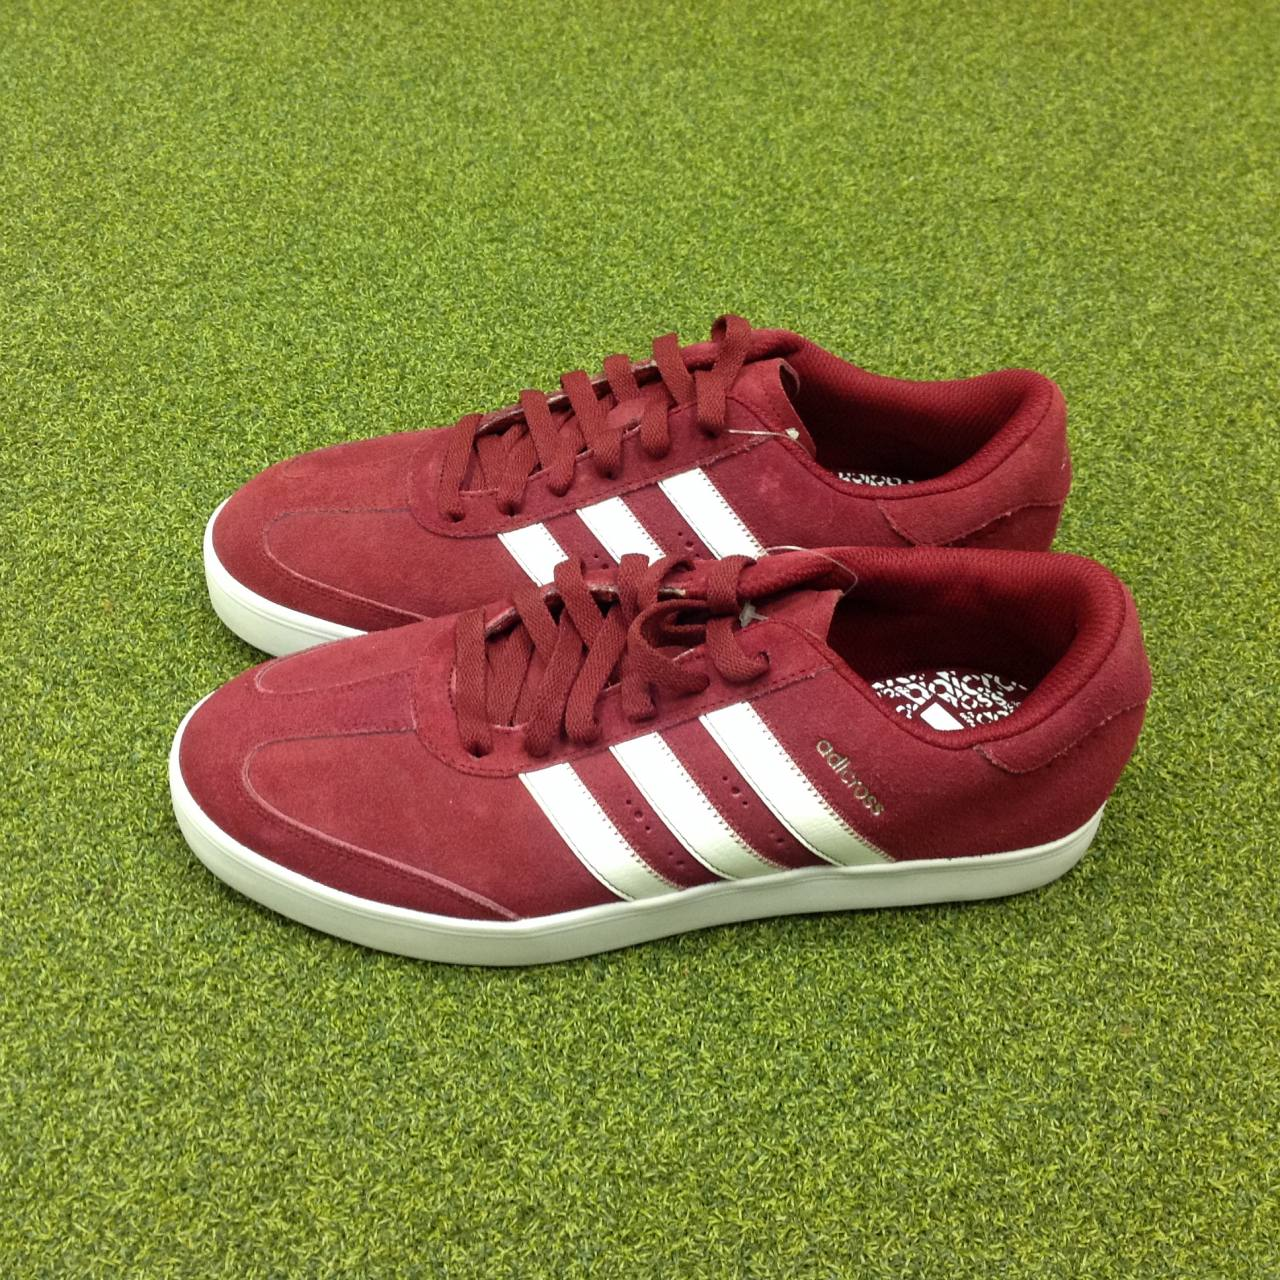 1c5b48309553dc NEW Adidas Adicross V Golf Shoes – UK Size 8.5 – US 9 – EU 42 2/3 ...